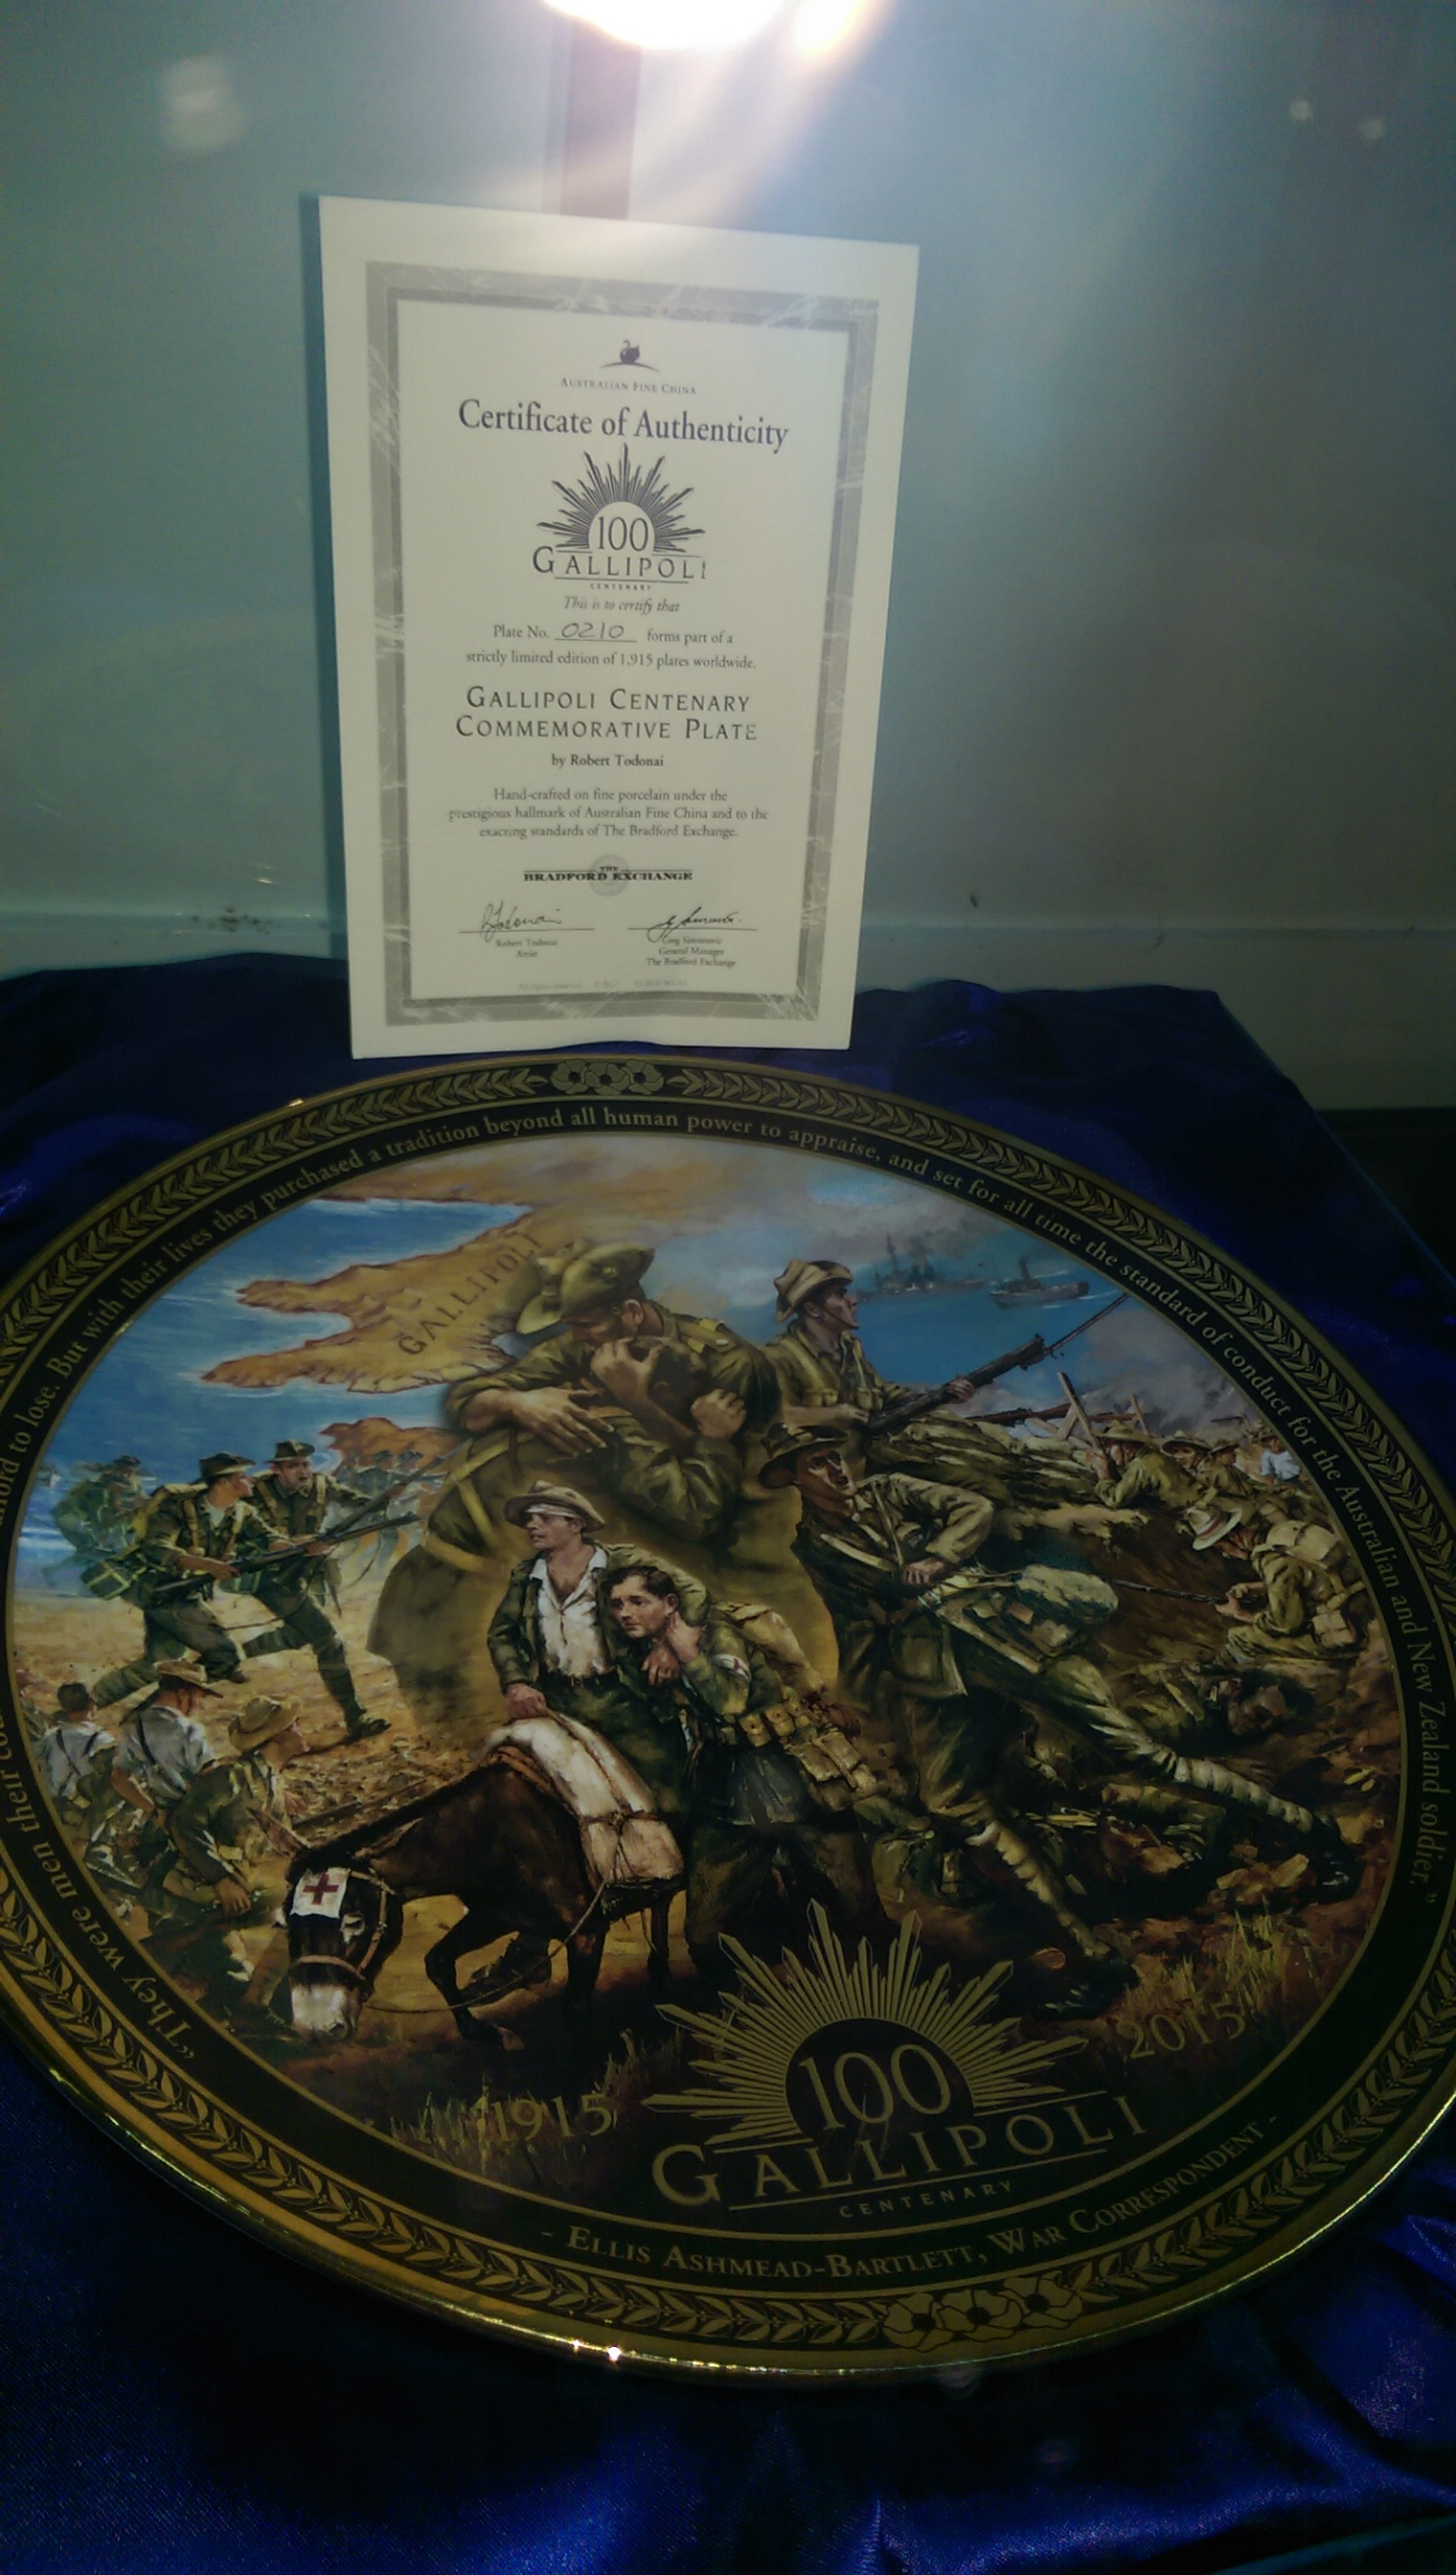 painted ceramic plate kindly donated by Max & Mavis Marshall to Urunga RSL display cabinet c/o Cleme